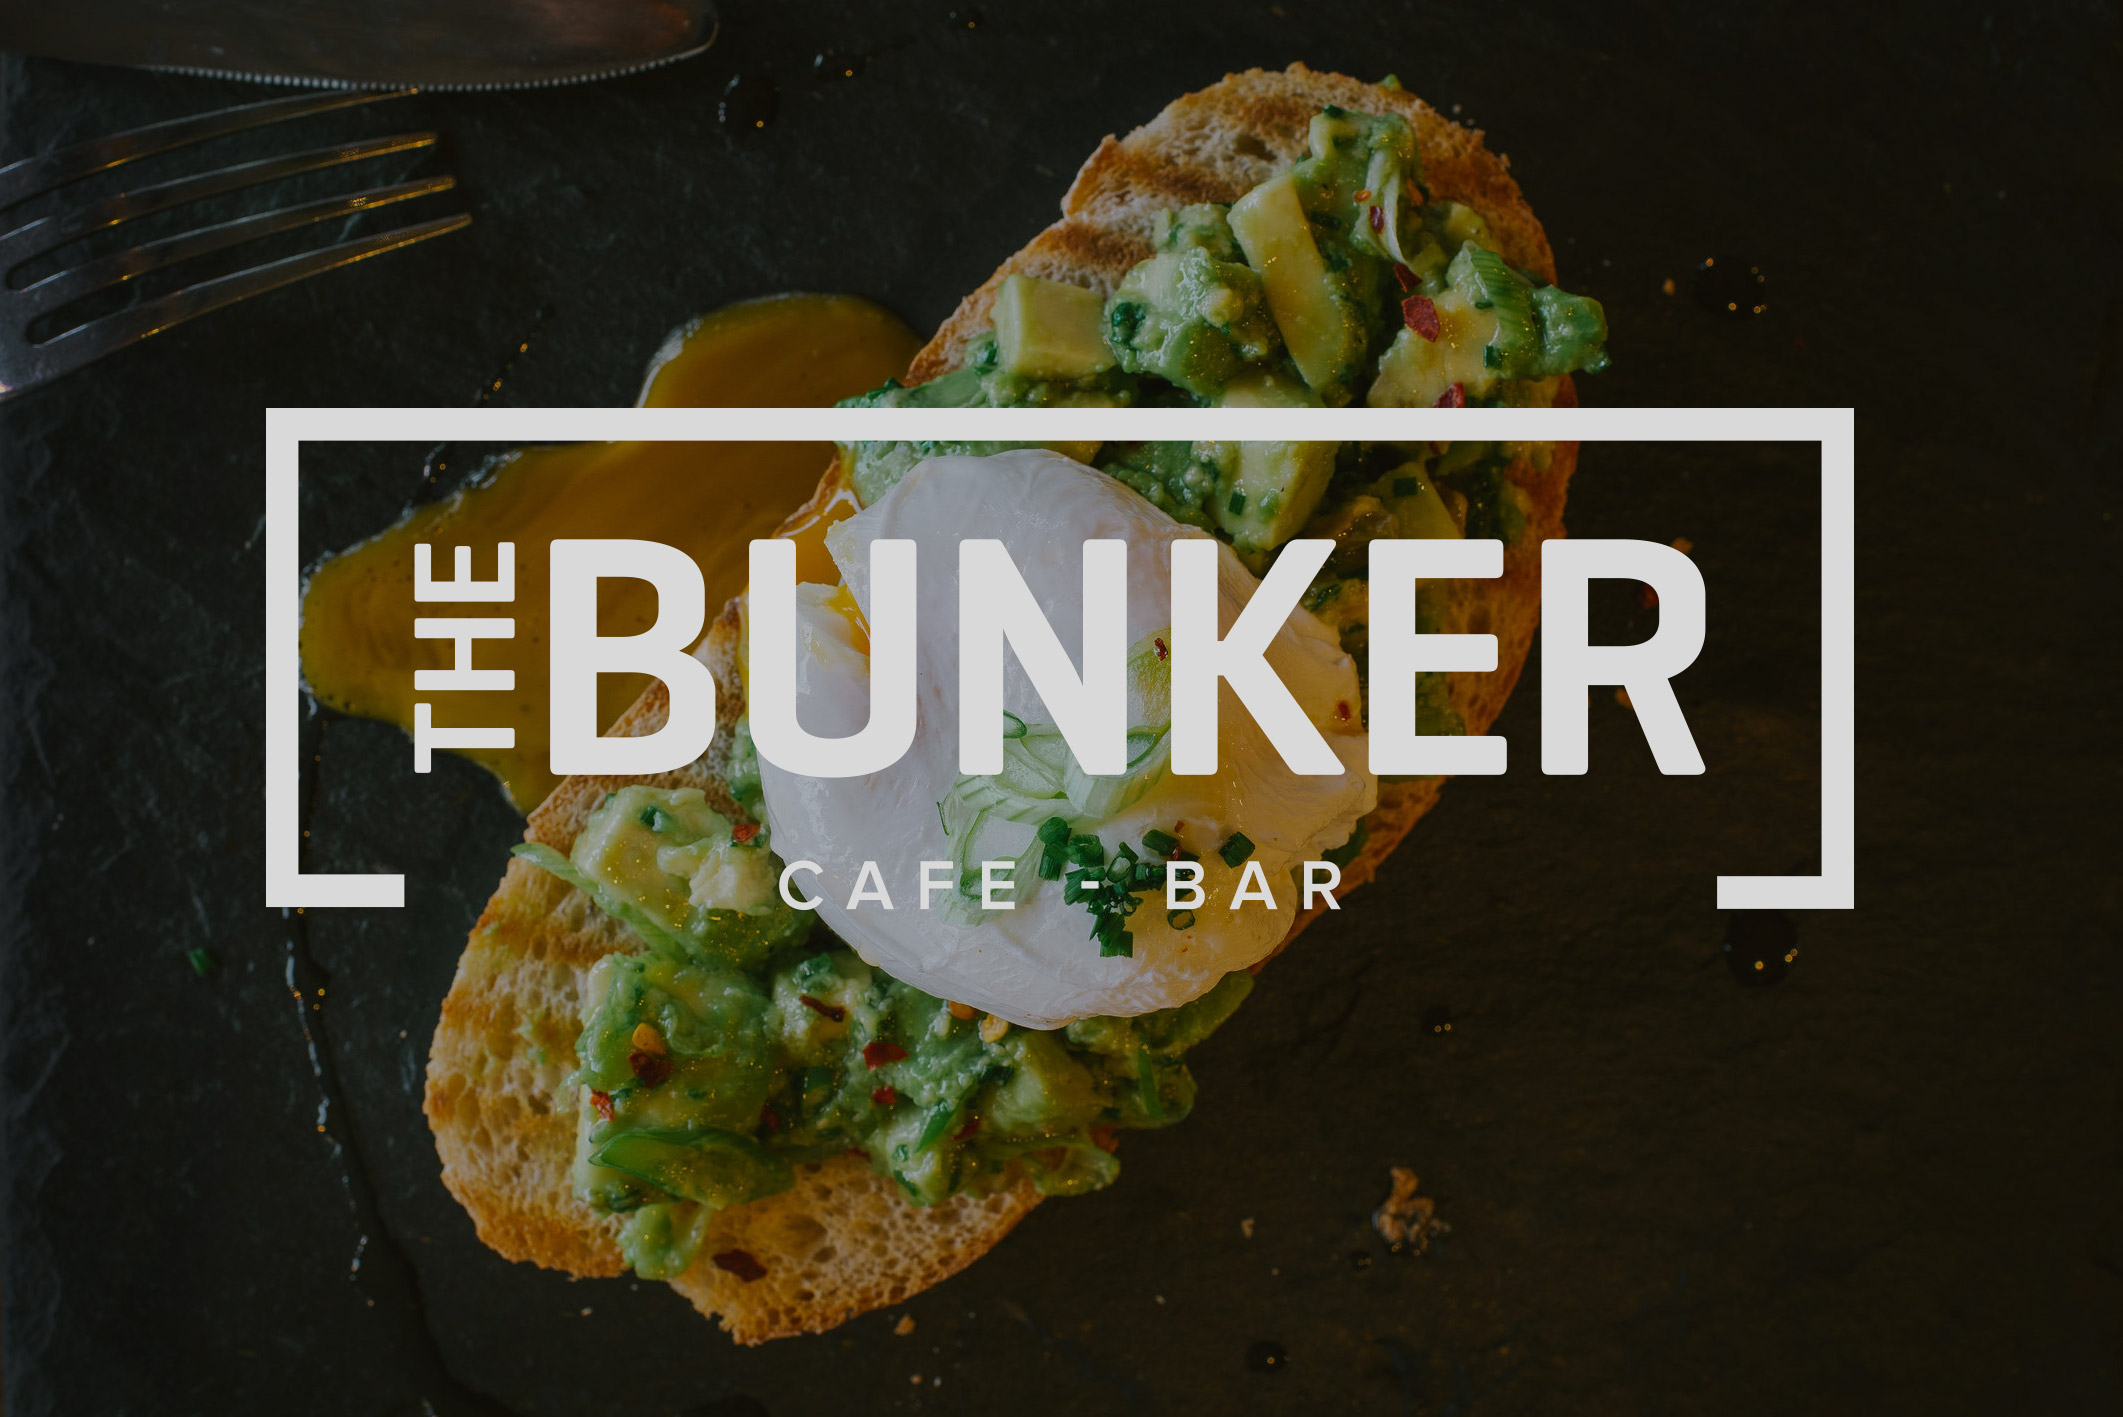 THE BUNKER    CAFE - BAR    Brand design for a new cafe/bar on St Catherines Hill, Christchurch